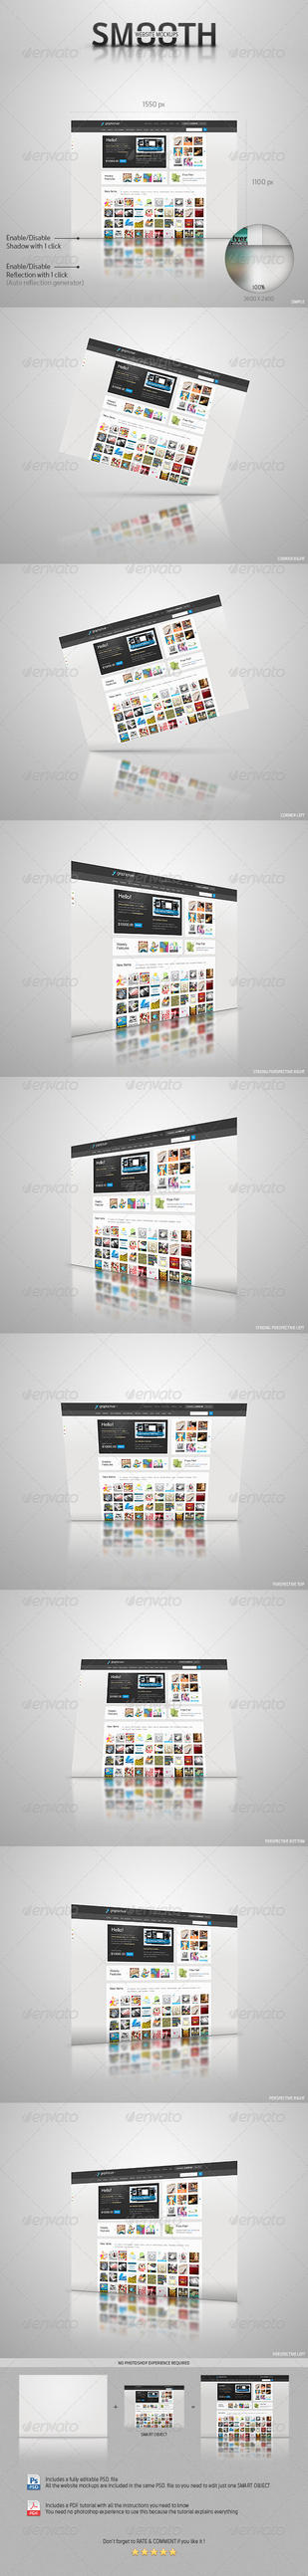 Smooth Website Mockups by Crealextion